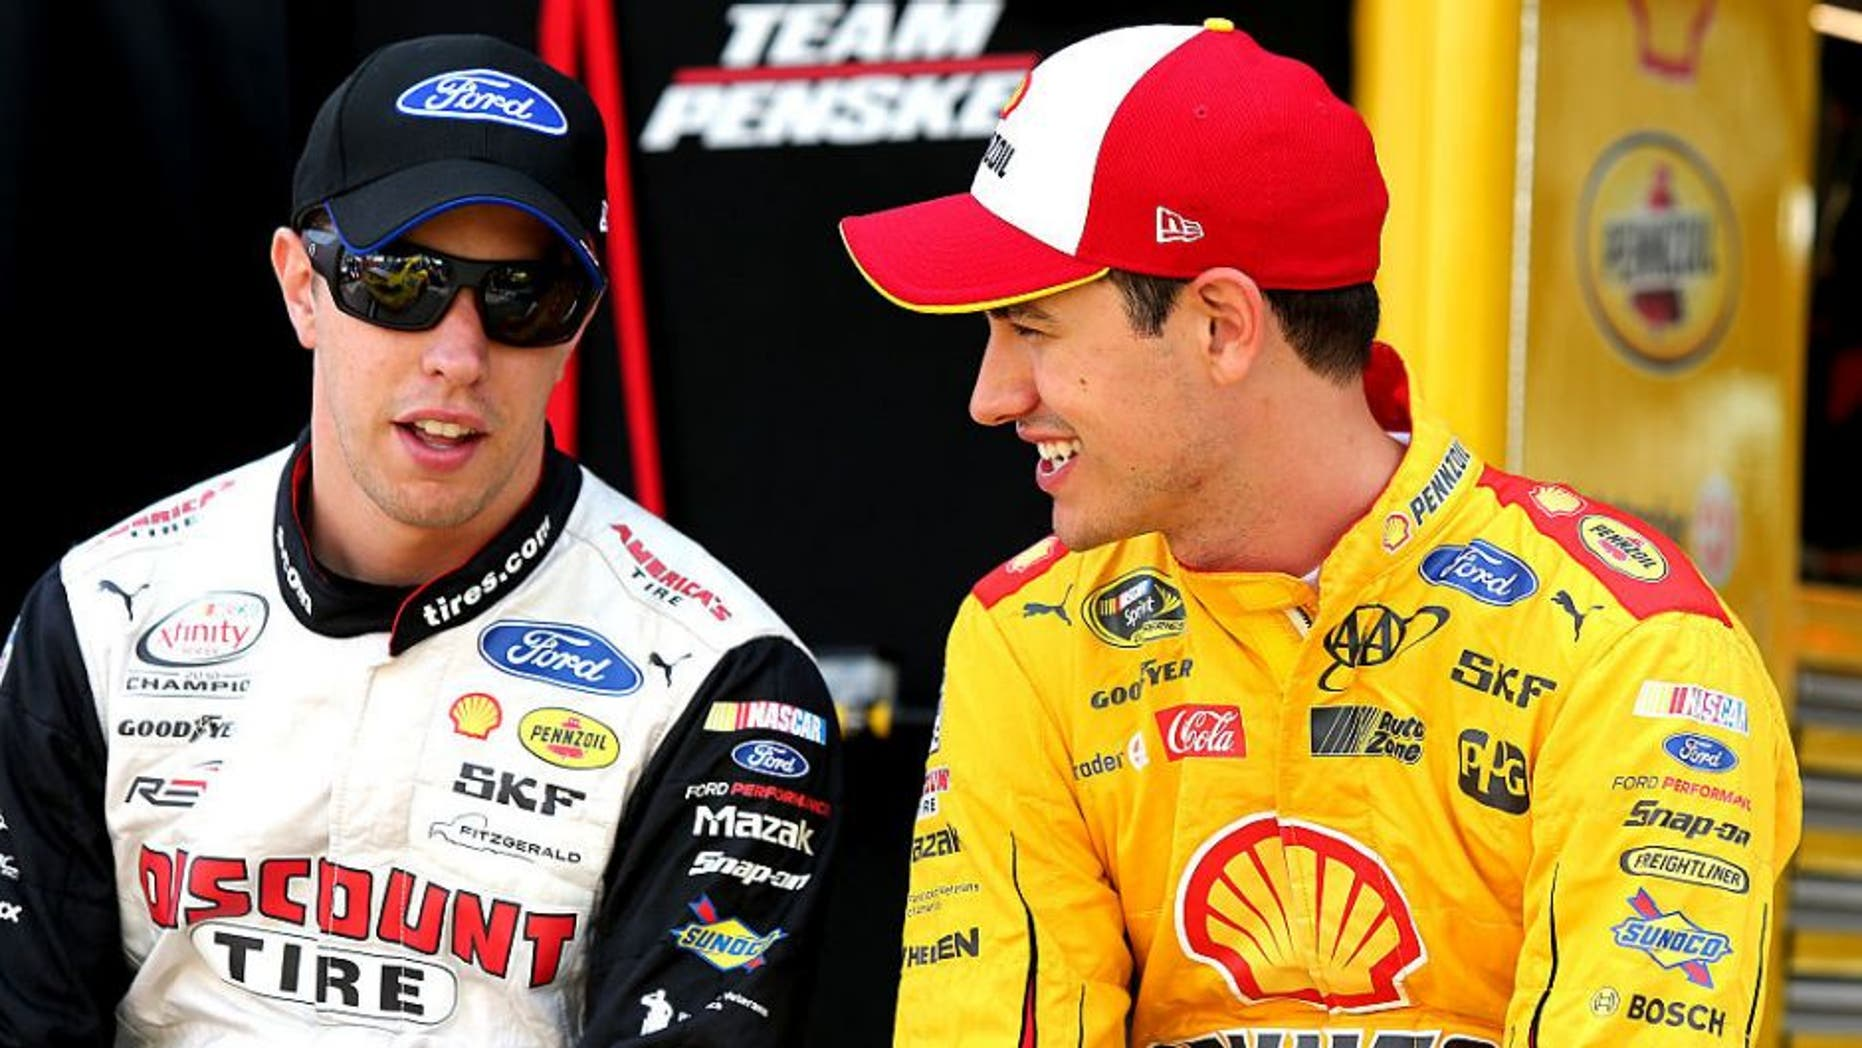 BRISTOL, TN - AUGUST 19: Brad Keselowski, driver of the #2 Autotrader Ford, talks to Joey Logano, driver of the #22 Shell Pennzoil Ford, on the grid during qualifying for the NASCAR Sprint Cup Series Bass Pro Shops NRA Night Race at Bristol Motor Speedway on August 19, 2016 in Bristol, Tennessee. (Photo by Jerry Markland/Getty Images)